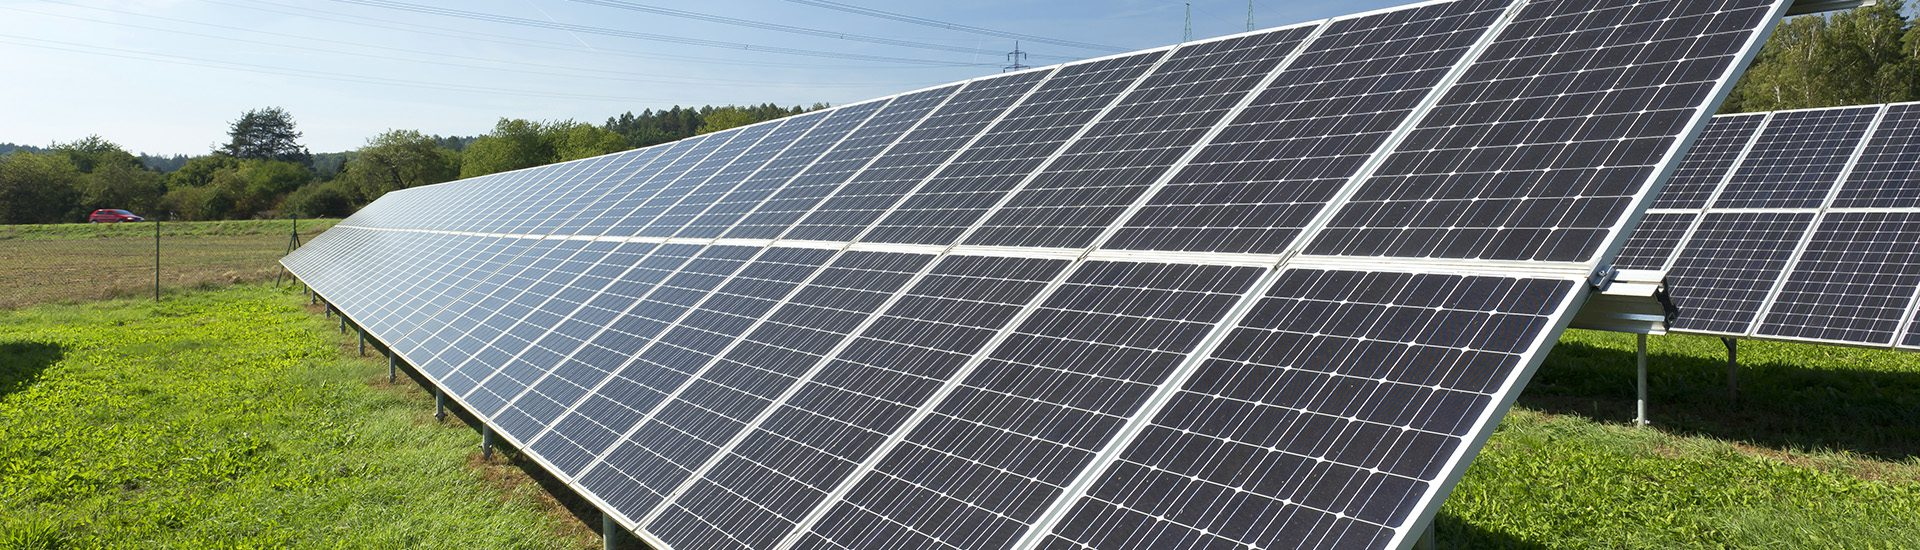 Solar Electric Systems in Allamakee County | Blake Electric Solar